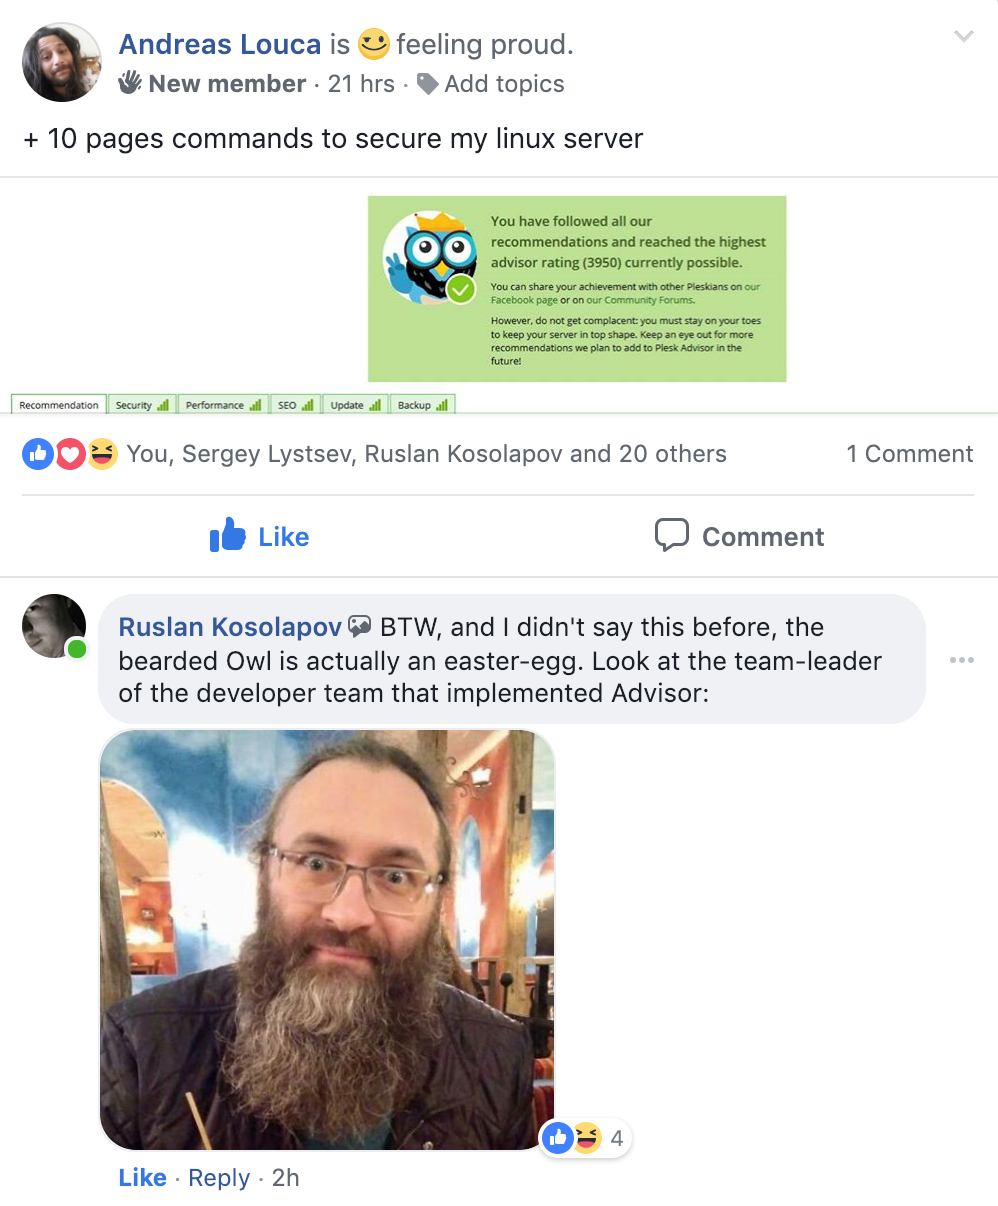 6 reasons to update Plesk Onyx - screenshot-4 - the real bearded owl - Advisor